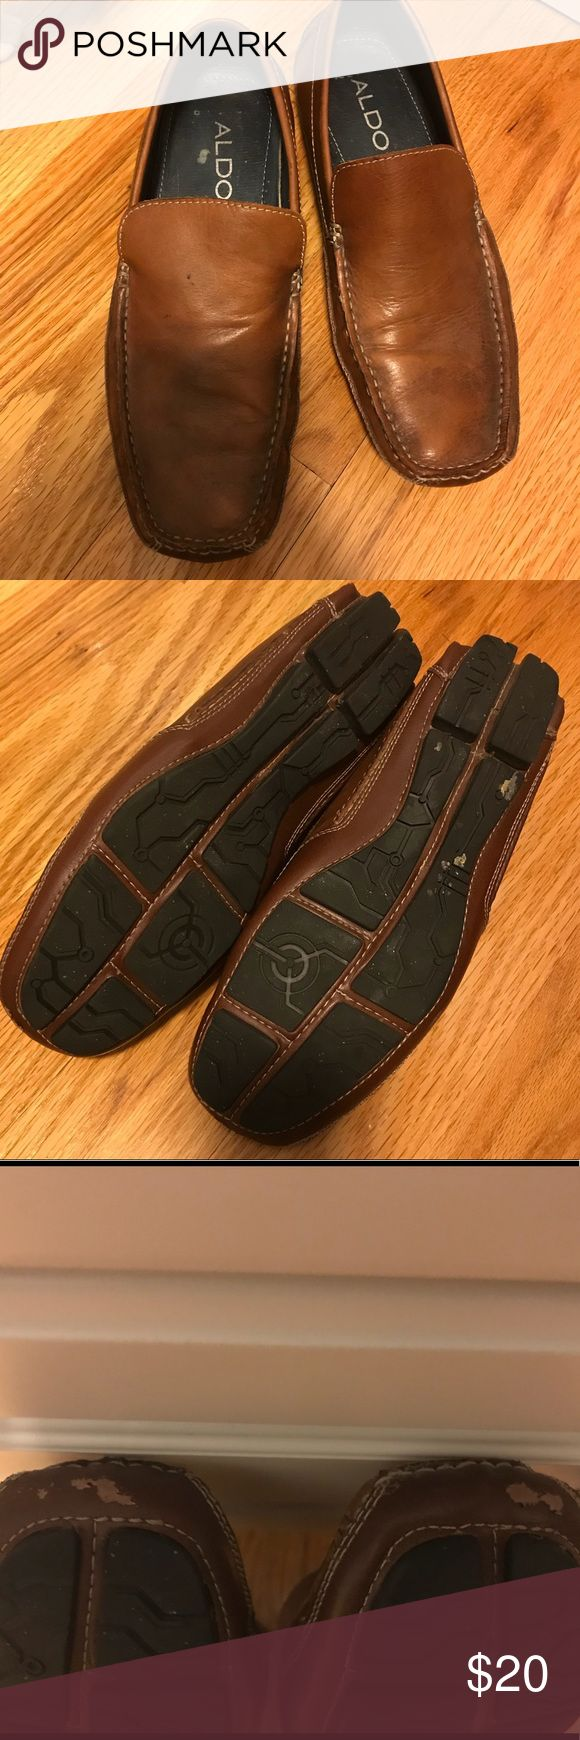 Men's brown leather loafers Brown leather loafer / slip on shoes from Aldo. Worn once to an outdoor wedding, so there is minor wear on the bottom soles and a scuff mark on each shoe at the tip of the front toe. Size 41 (European sizing) is comparable to a size 8. Aldo Shoes Loafers & Slip-Ons